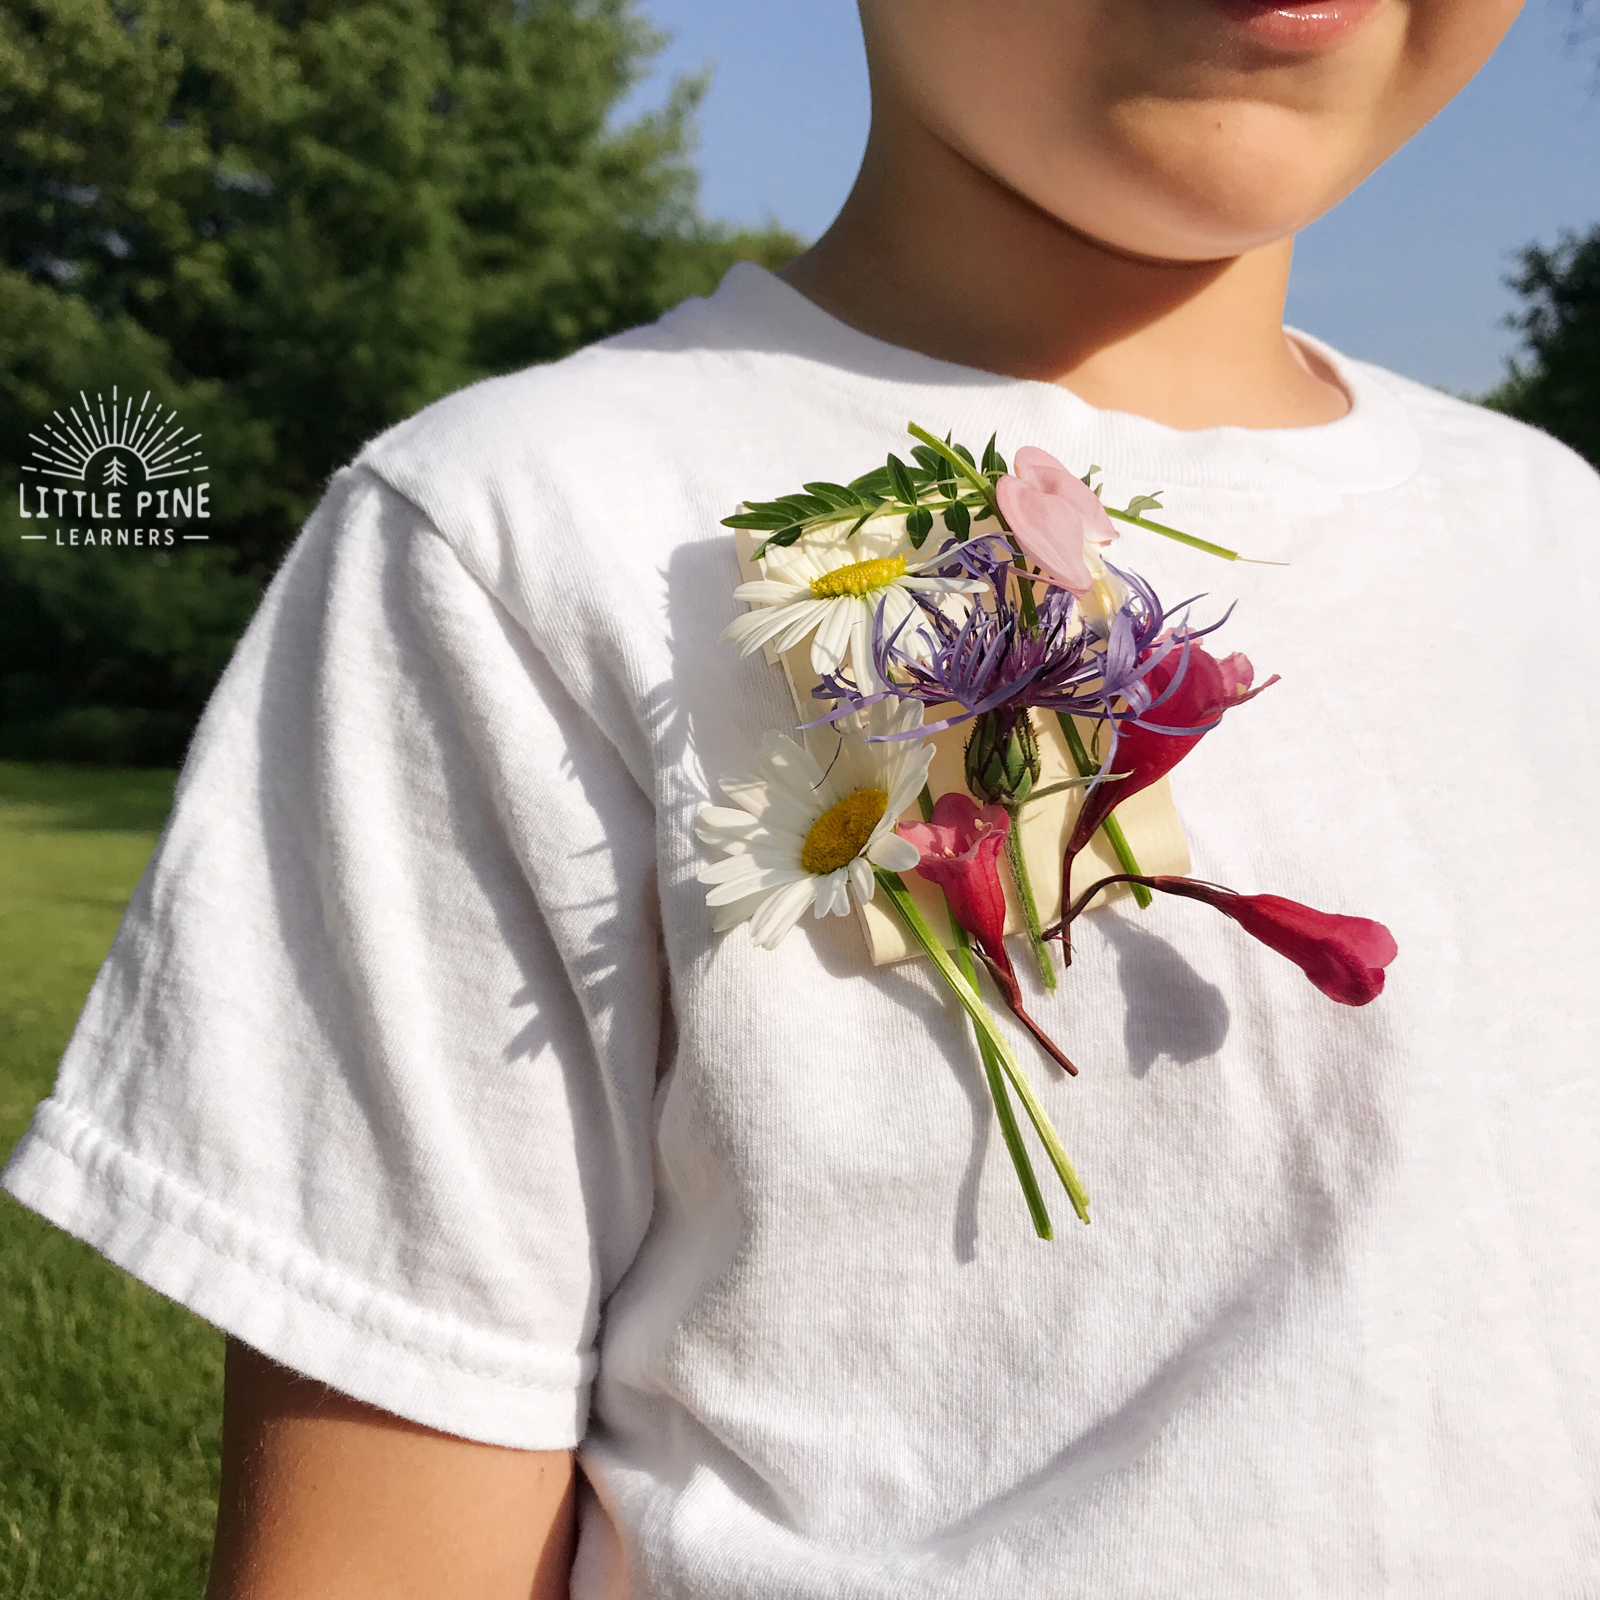 Duct tape and flower nature badge for kids